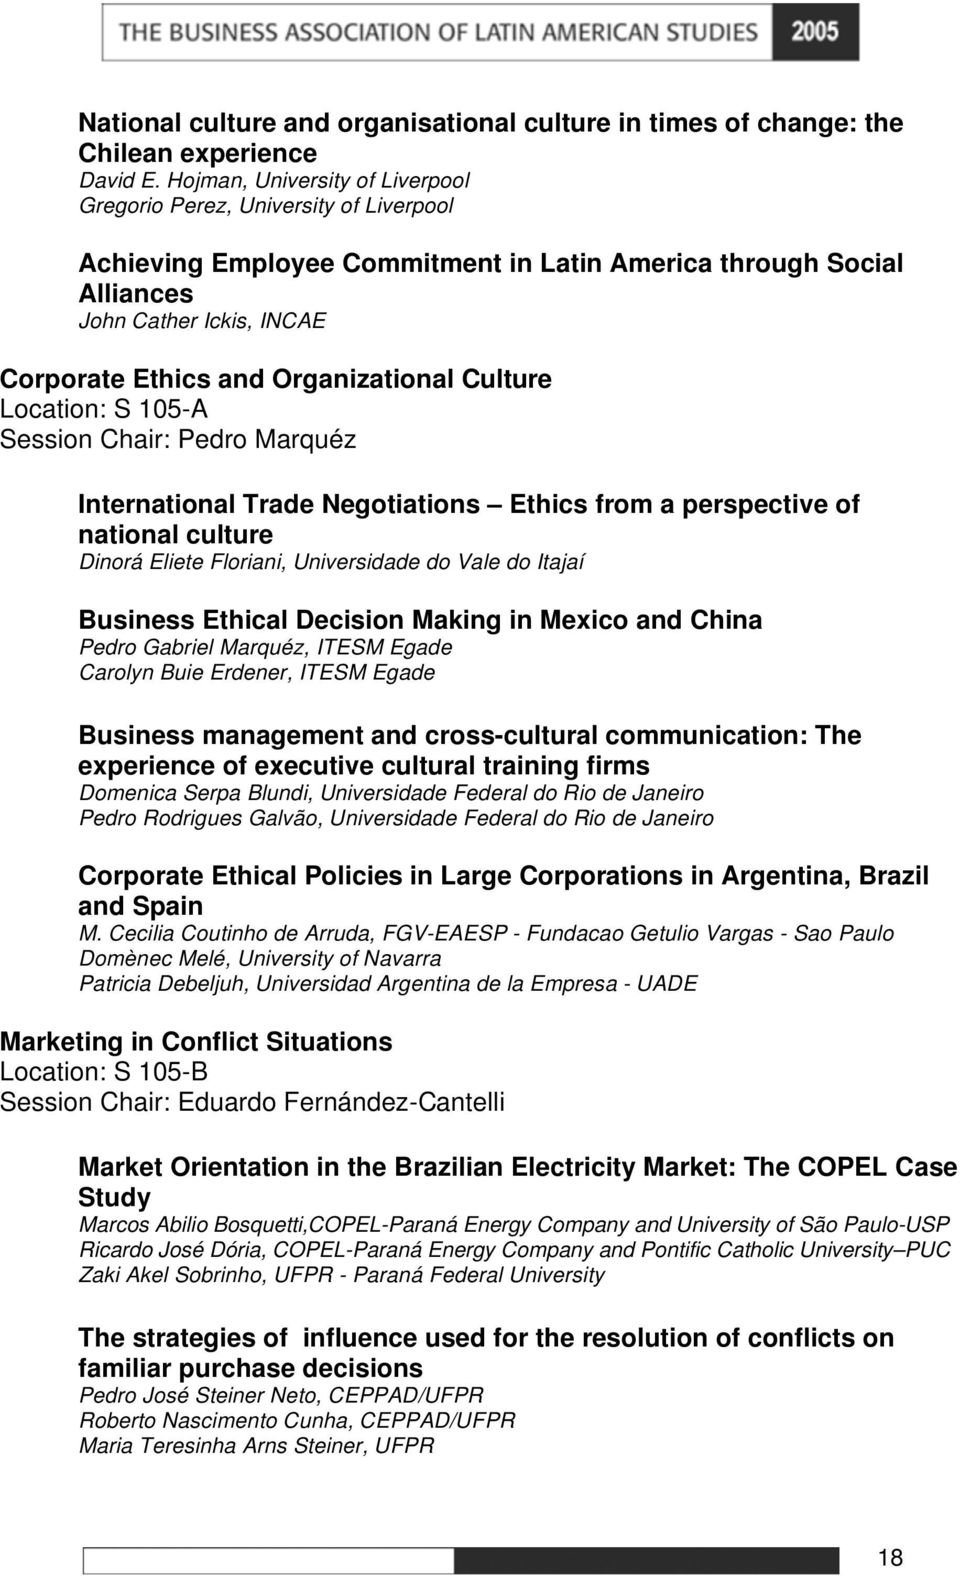 Organizational Culture Location: S 105-A Session Chair: Pedro Marquéz International Trade Negotiations Ethics from a perspective of national culture Dinorá Eliete Floriani, Universidade do Vale do